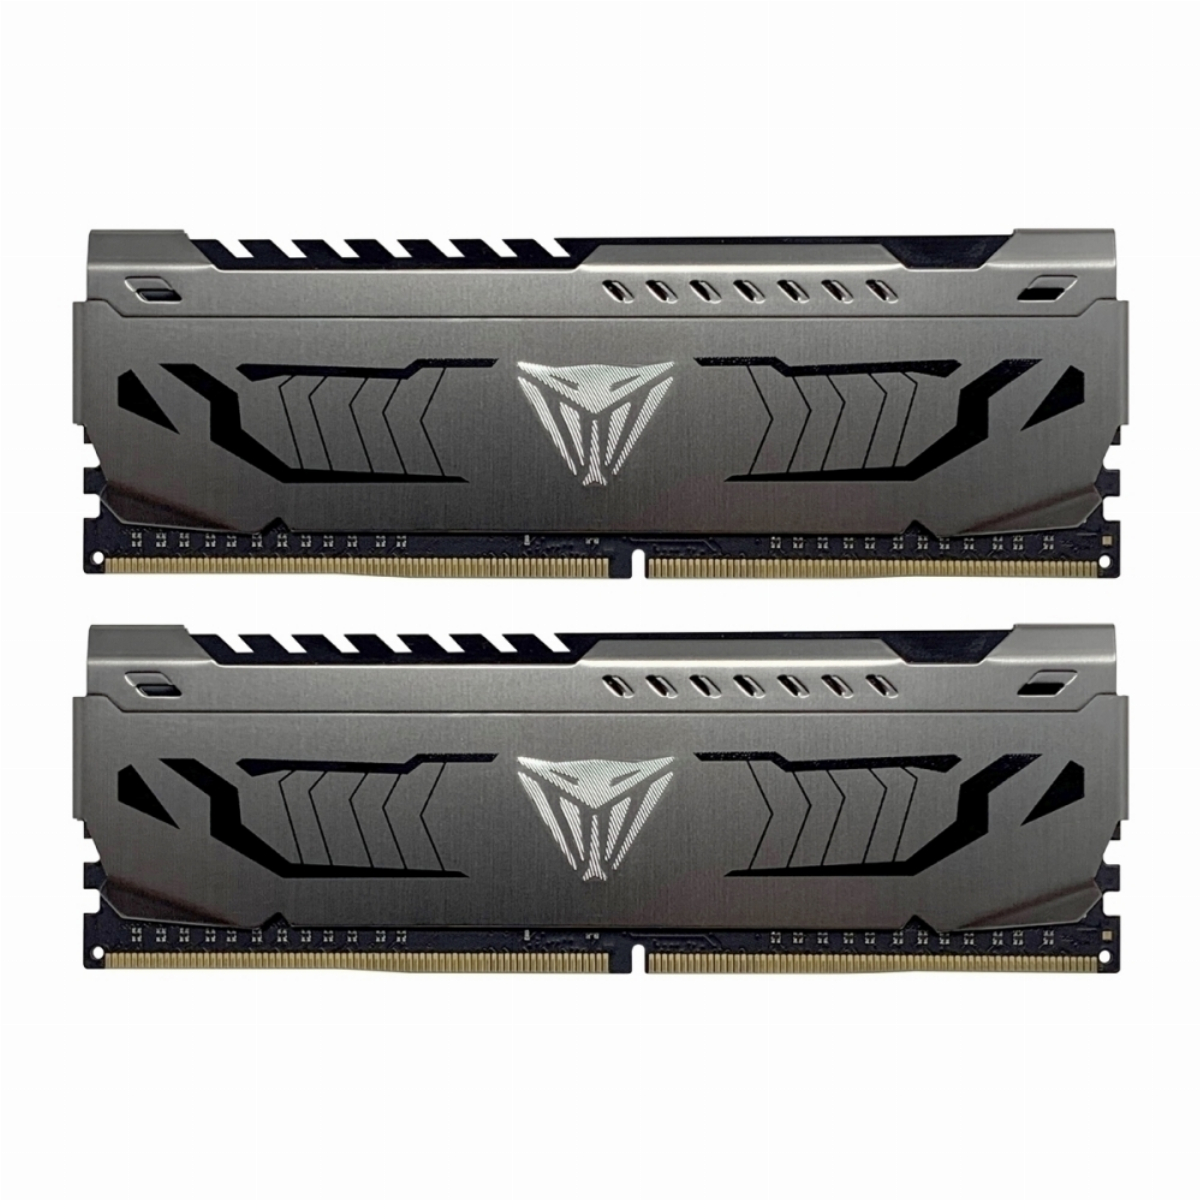 Памет Patriot Viper Steel 32GB (2x16GB) 3200Mhz DDR4 CL16